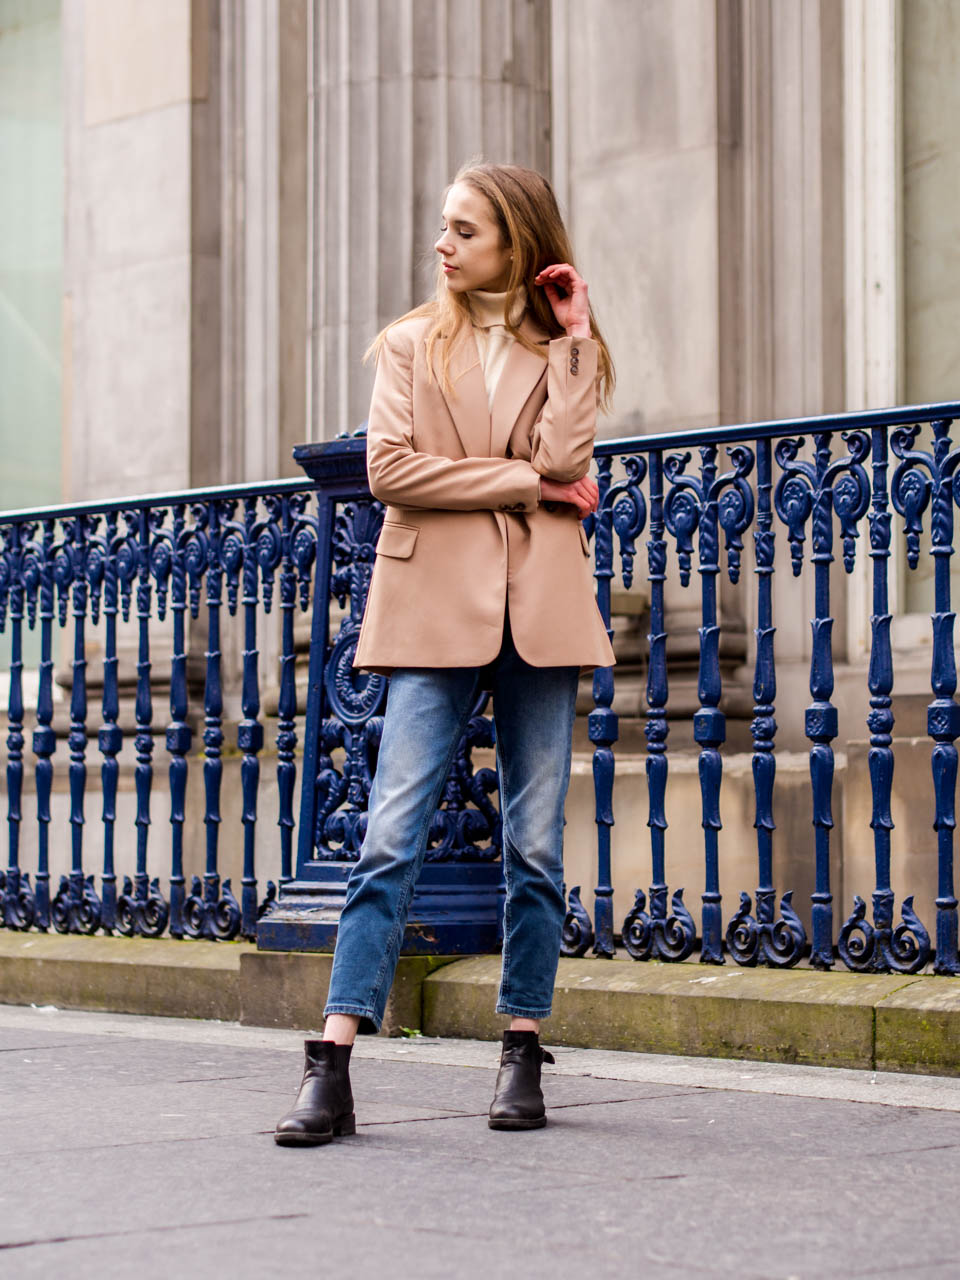 Autumn outfit with mom jeans, cream turtleneck jumper and camel blazer - Syyasasu farkkujen, beigen pooloneuleen ja kamelinvärisen bleiserin kanssa